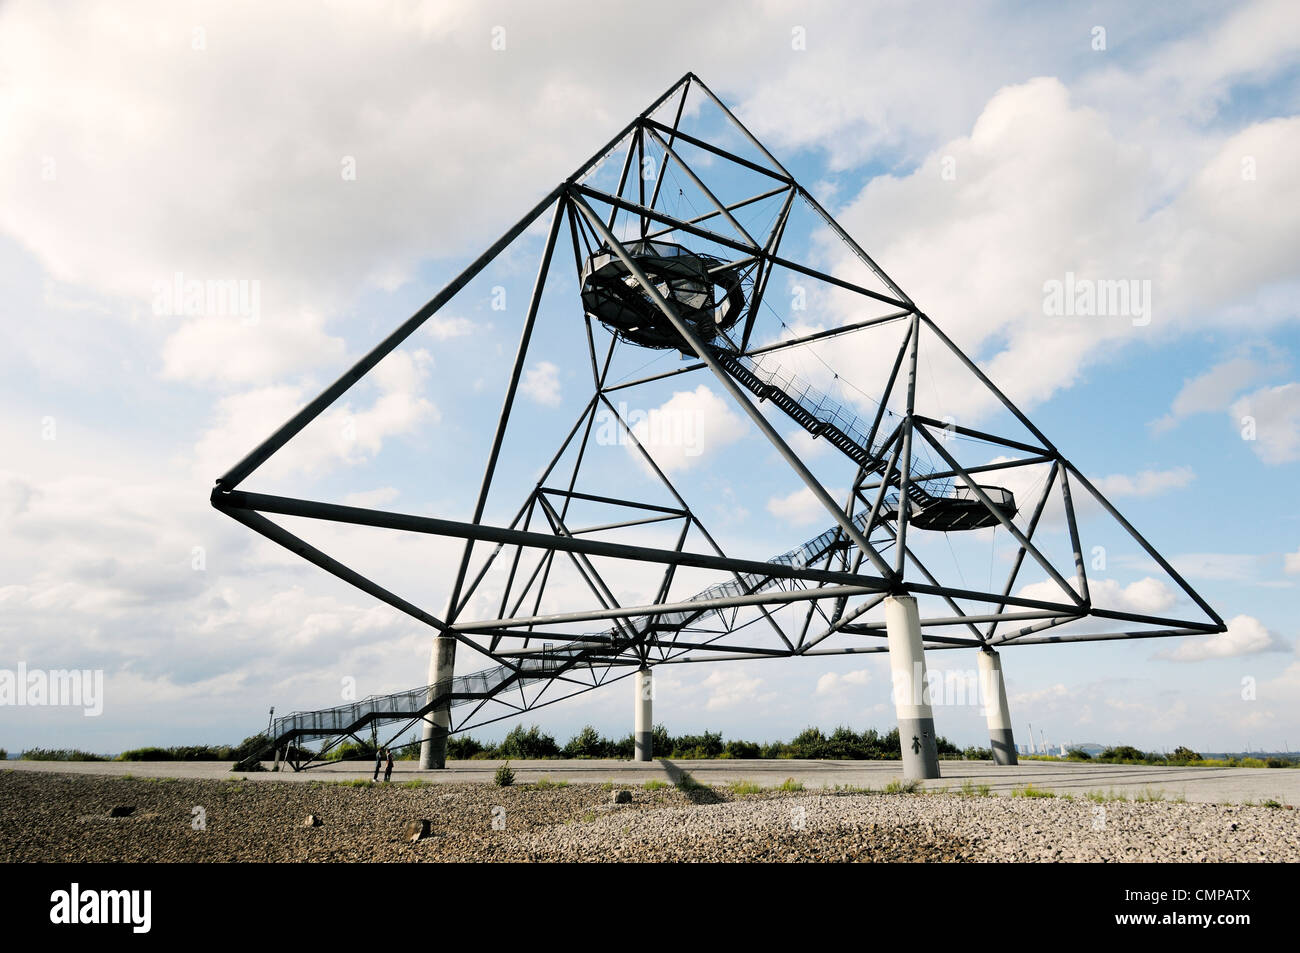 Das Tetraeder, Large tetrahedron sculpture with viewing platforms on old coalmining spoil heap at Bottrop, Ruhr - Stock Image